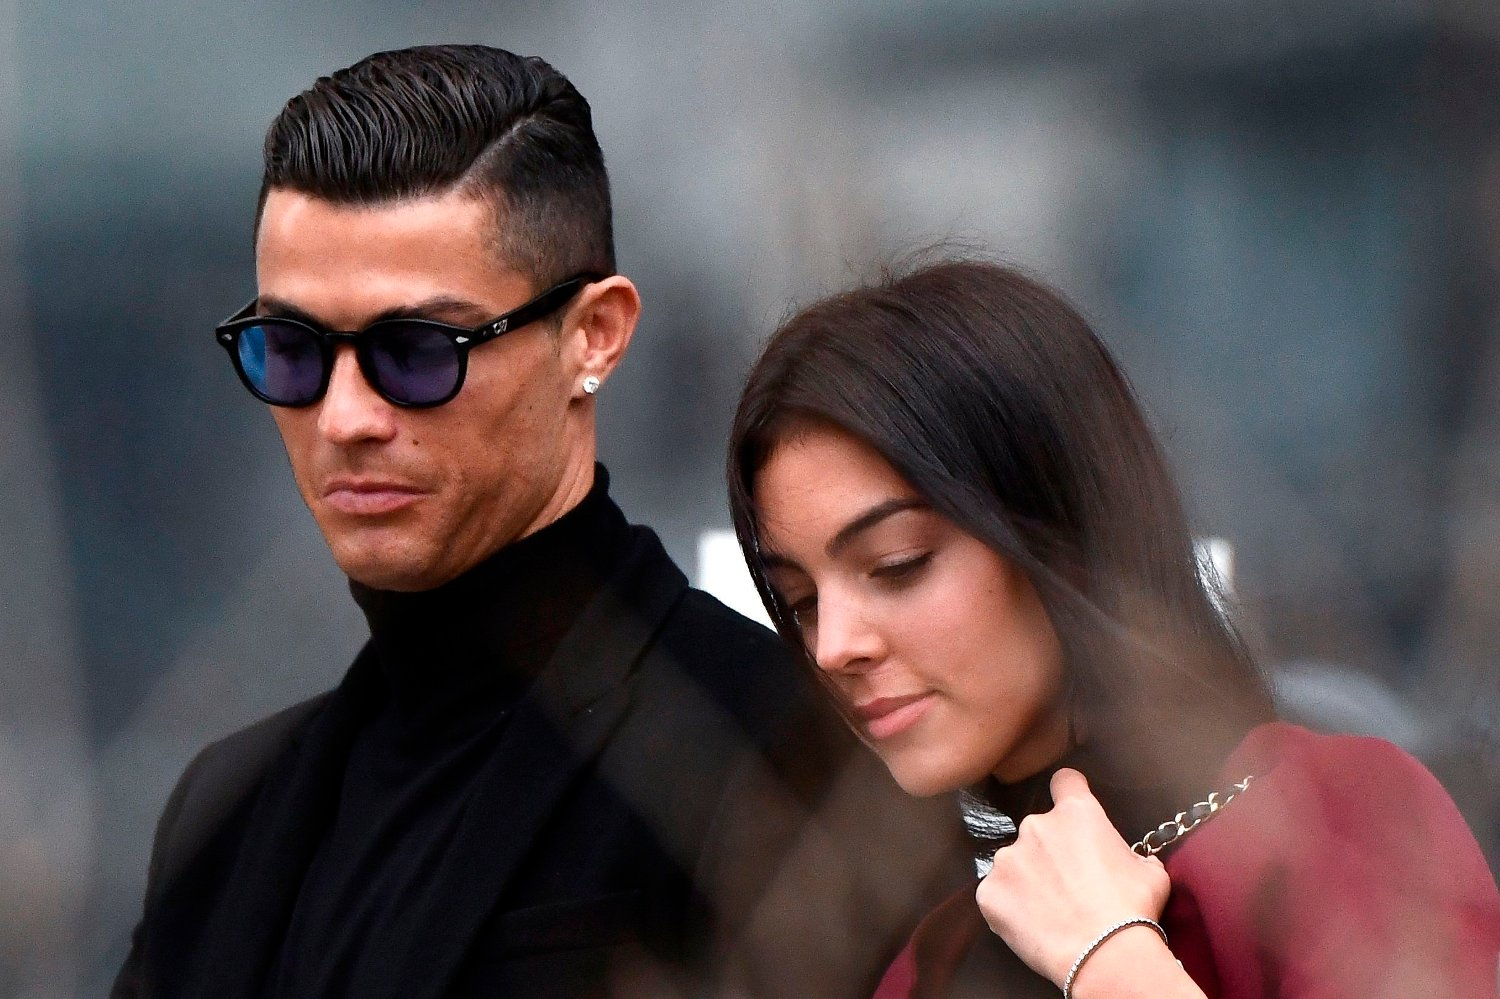 uventus' forward and former Real Madrid player Cristiano Ronaldo leaves with his Spanish girlfriend Georgina Rodriguez after attending a court hearing for tax evasion in Madrid on January 22, 2019. - Ronaldo is expected to be given a hefty fine after Spanish tax authorities and the player's advisors made a deal to settle claims he hid income generated from image rights when he played for Real Madrid.